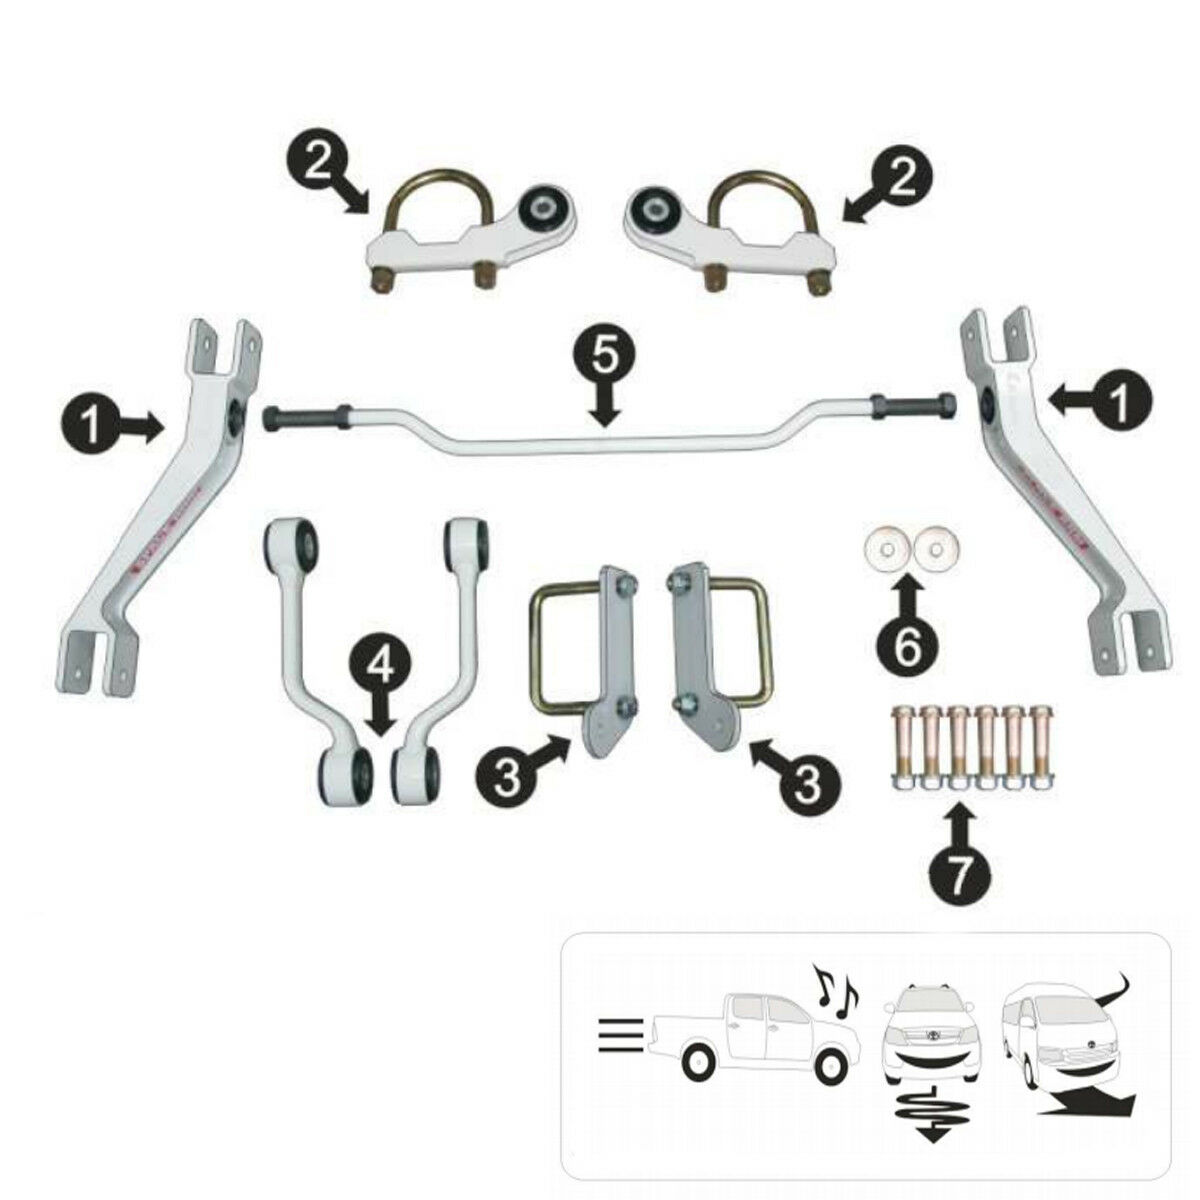 //cdn.nhanh.vn/cdn/store/10750/ps/20190930/thanh_chong_lat_xe_nissan_navara_2006_2014_rear_stabilizer_anti_roll_sway_bar_space_arm_js1__5_.jpg